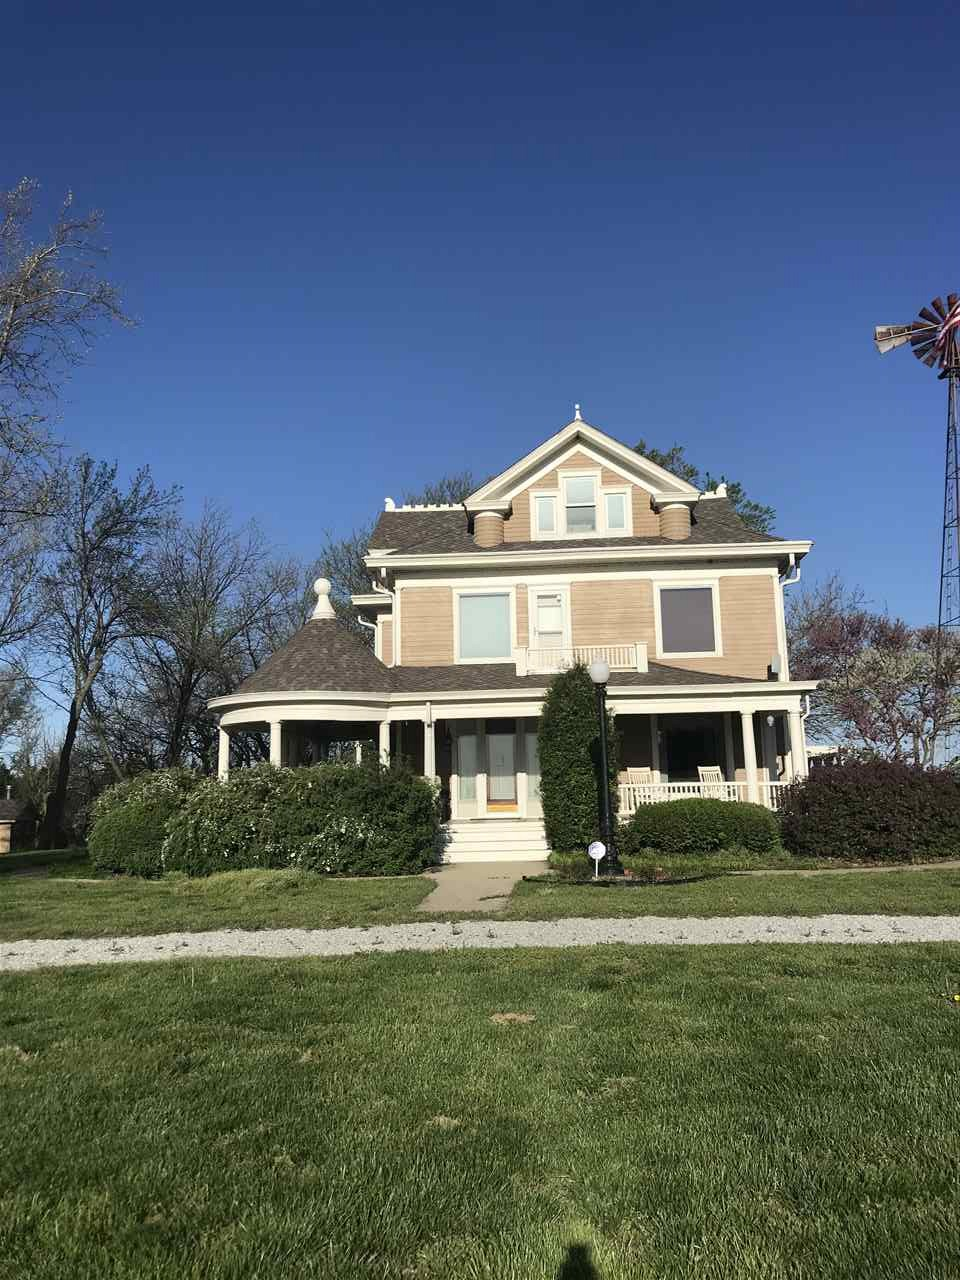 This is truly one of a kind property!!! The house is a beautiful Victorian style home with updates m